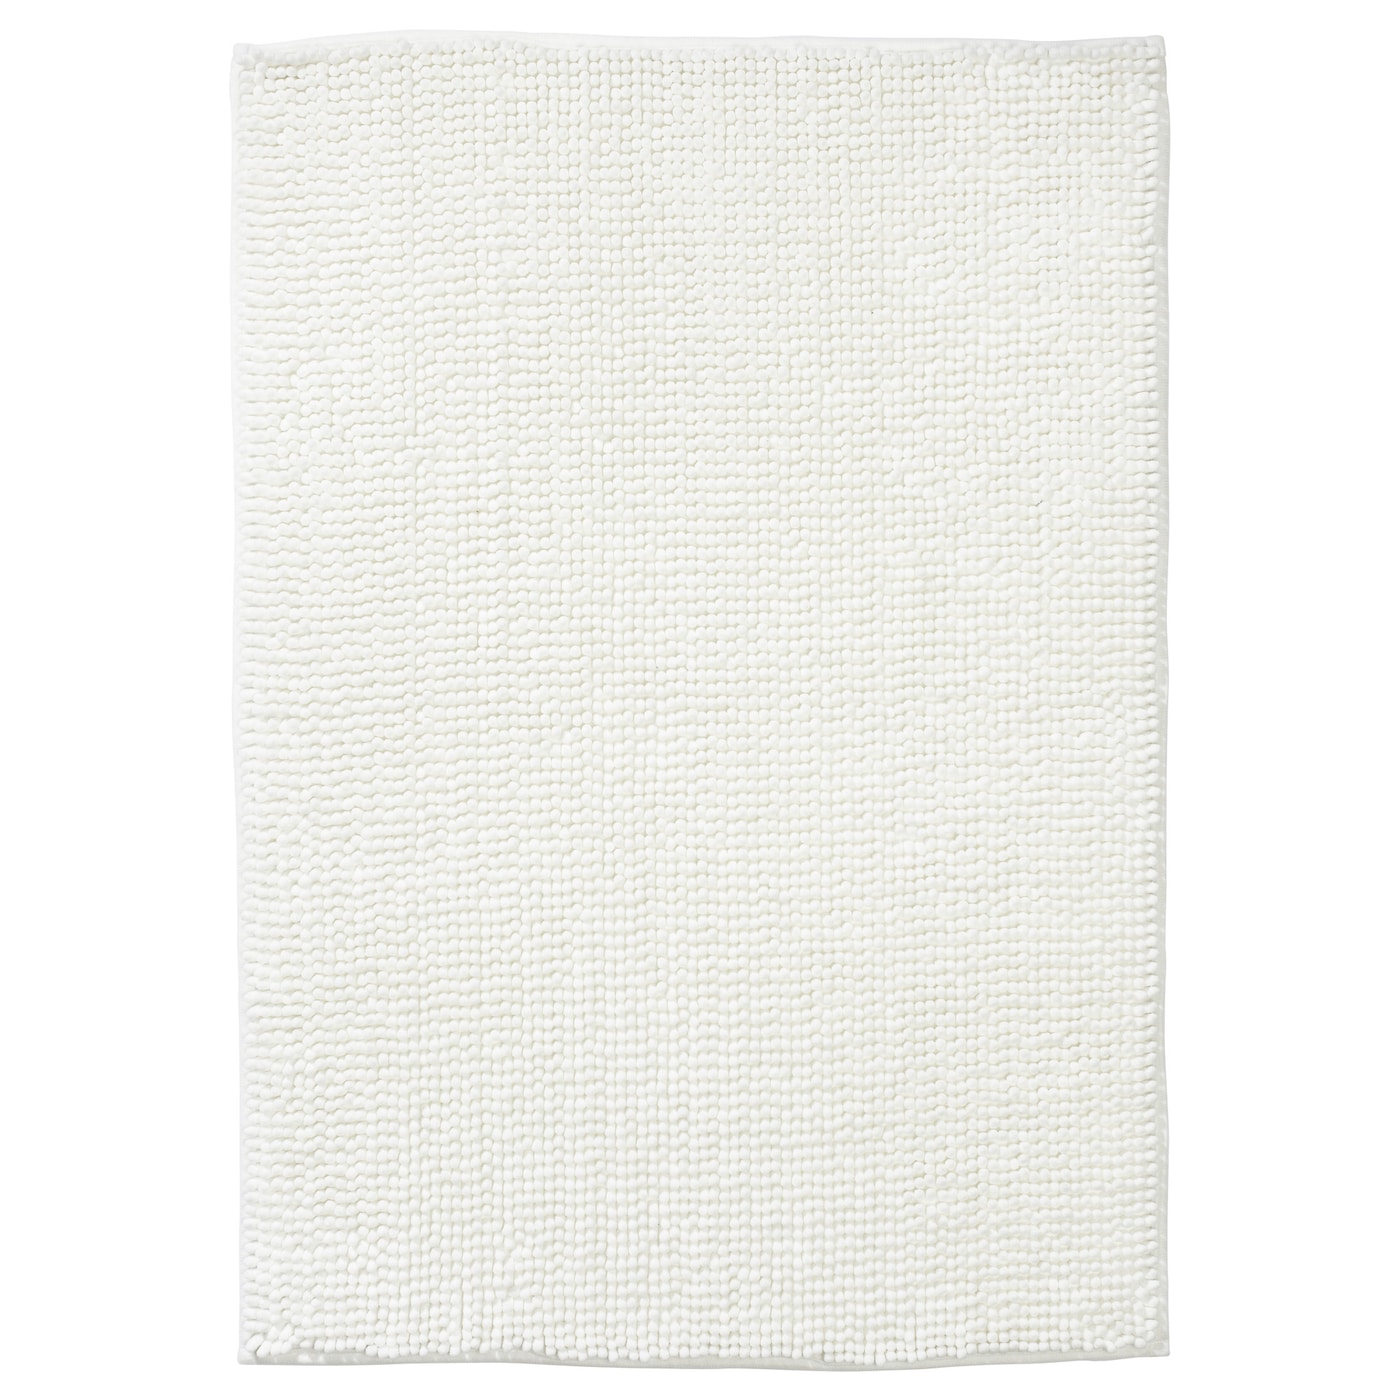 IKEA TOFTBO Bath Mat Ultra Soft, Absorbent And Quick To Dry Since Itu0027s Made  Of